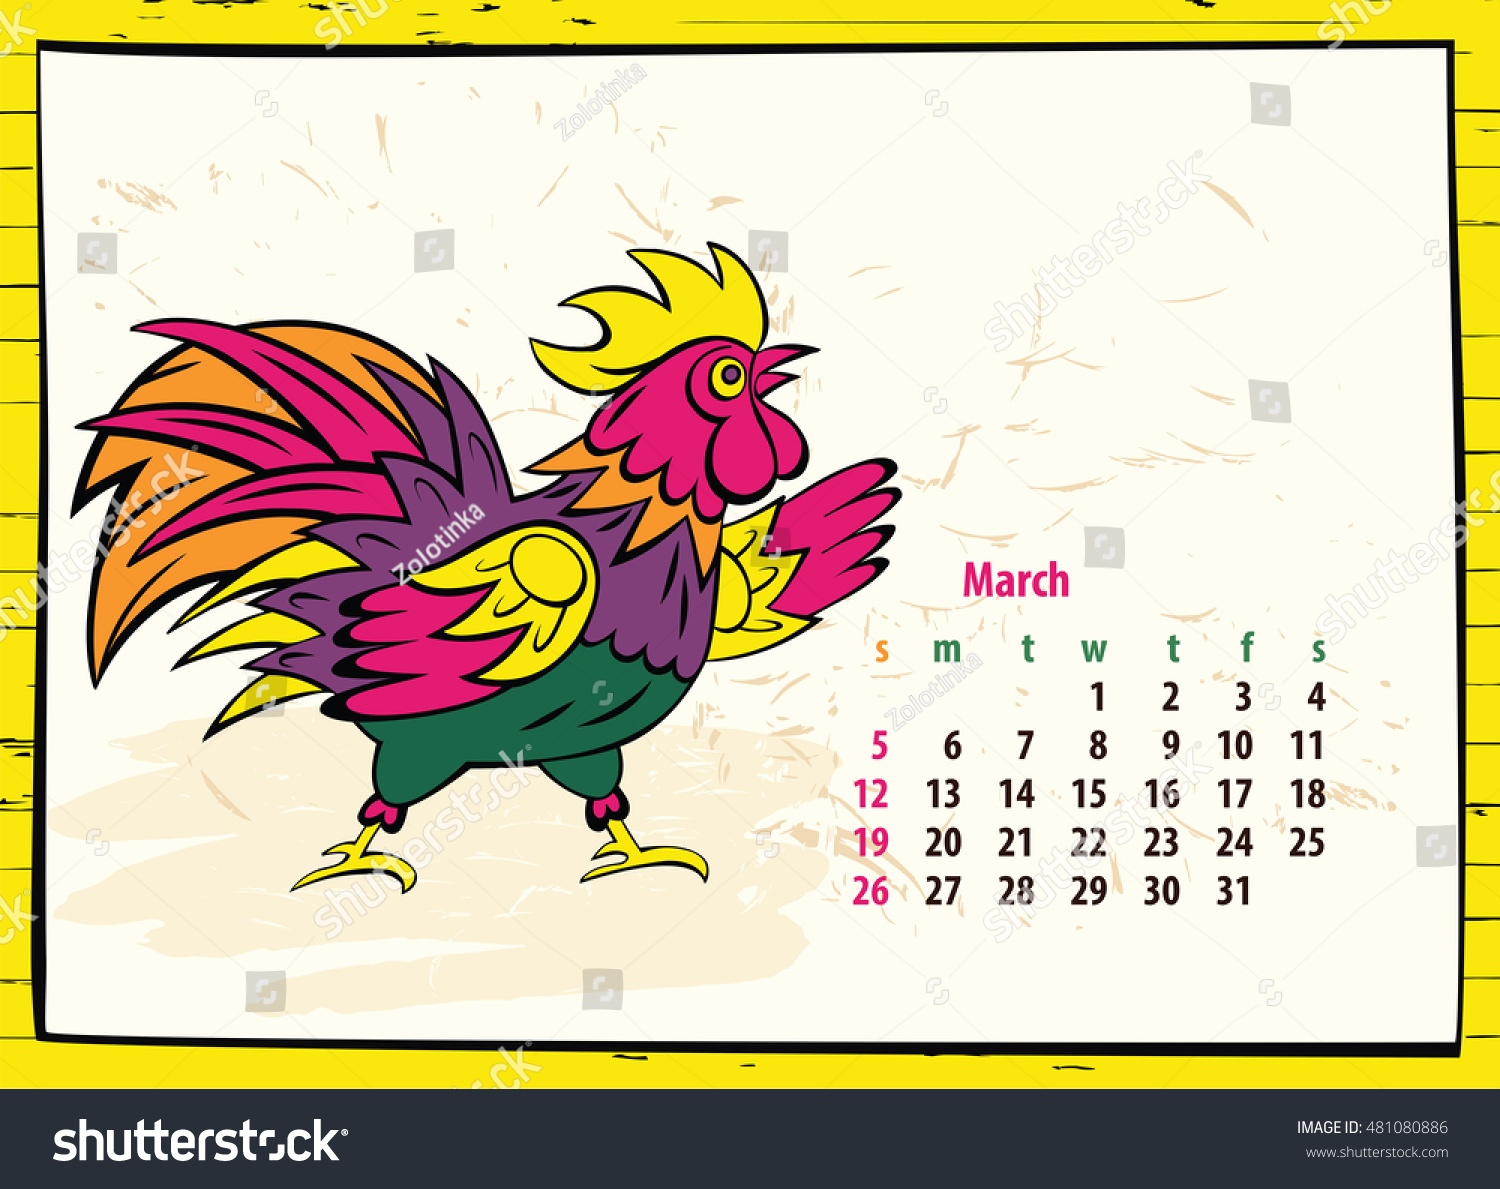 Chinese Calendar Illustration : Calendar chinese new year rooster stock illustration